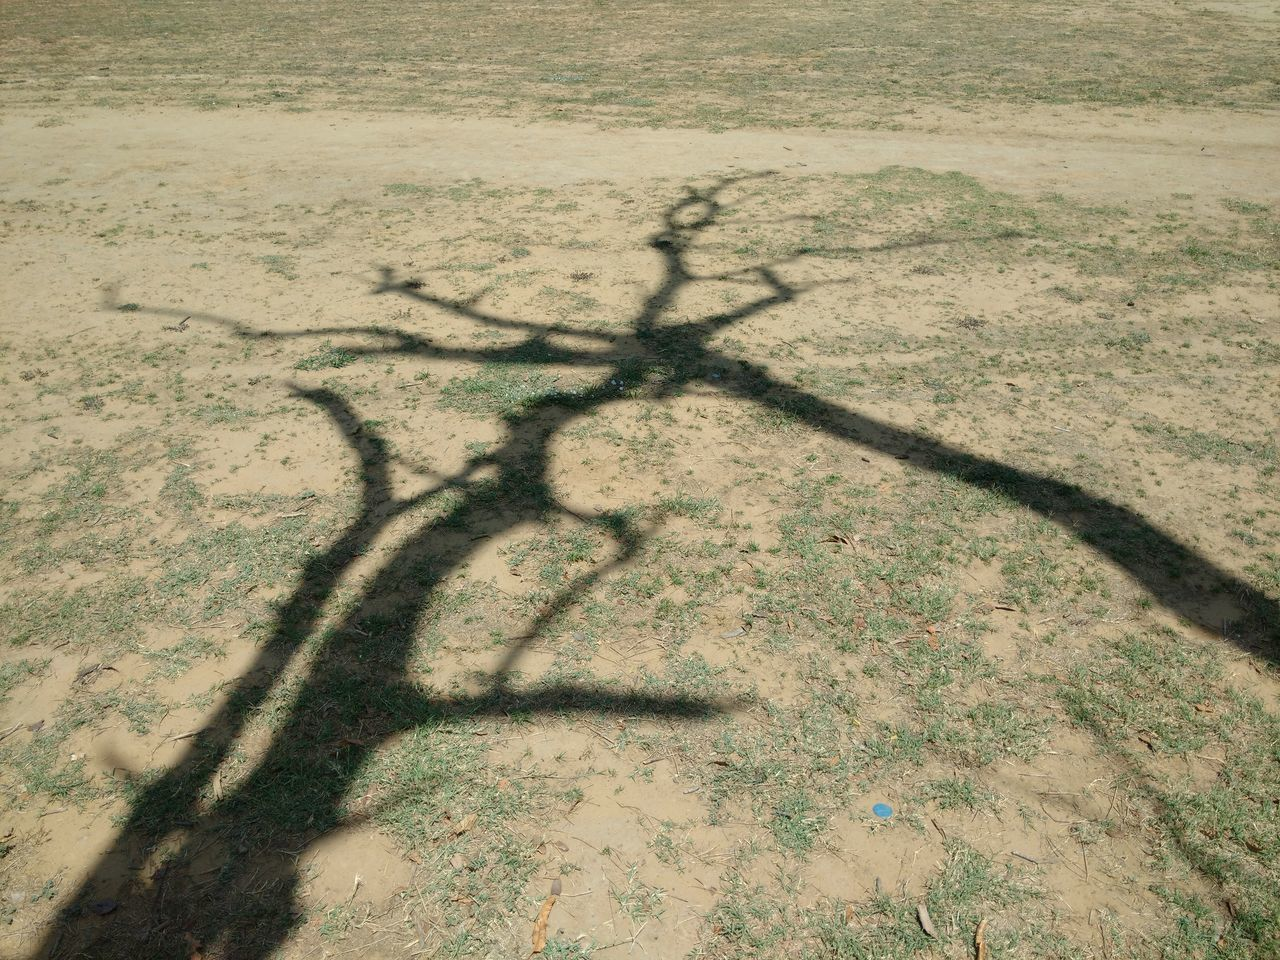 Shadow Sunlight Outdoors No People Nature High Angle View Focus On Shadow Day Ground View Shapes And Lines No Filter, No Edit, Just Photography Nature_collection Natural Pattern EyeEm Best Shots Eyem Gallery Landscape Grass Photography Beautiful Nature